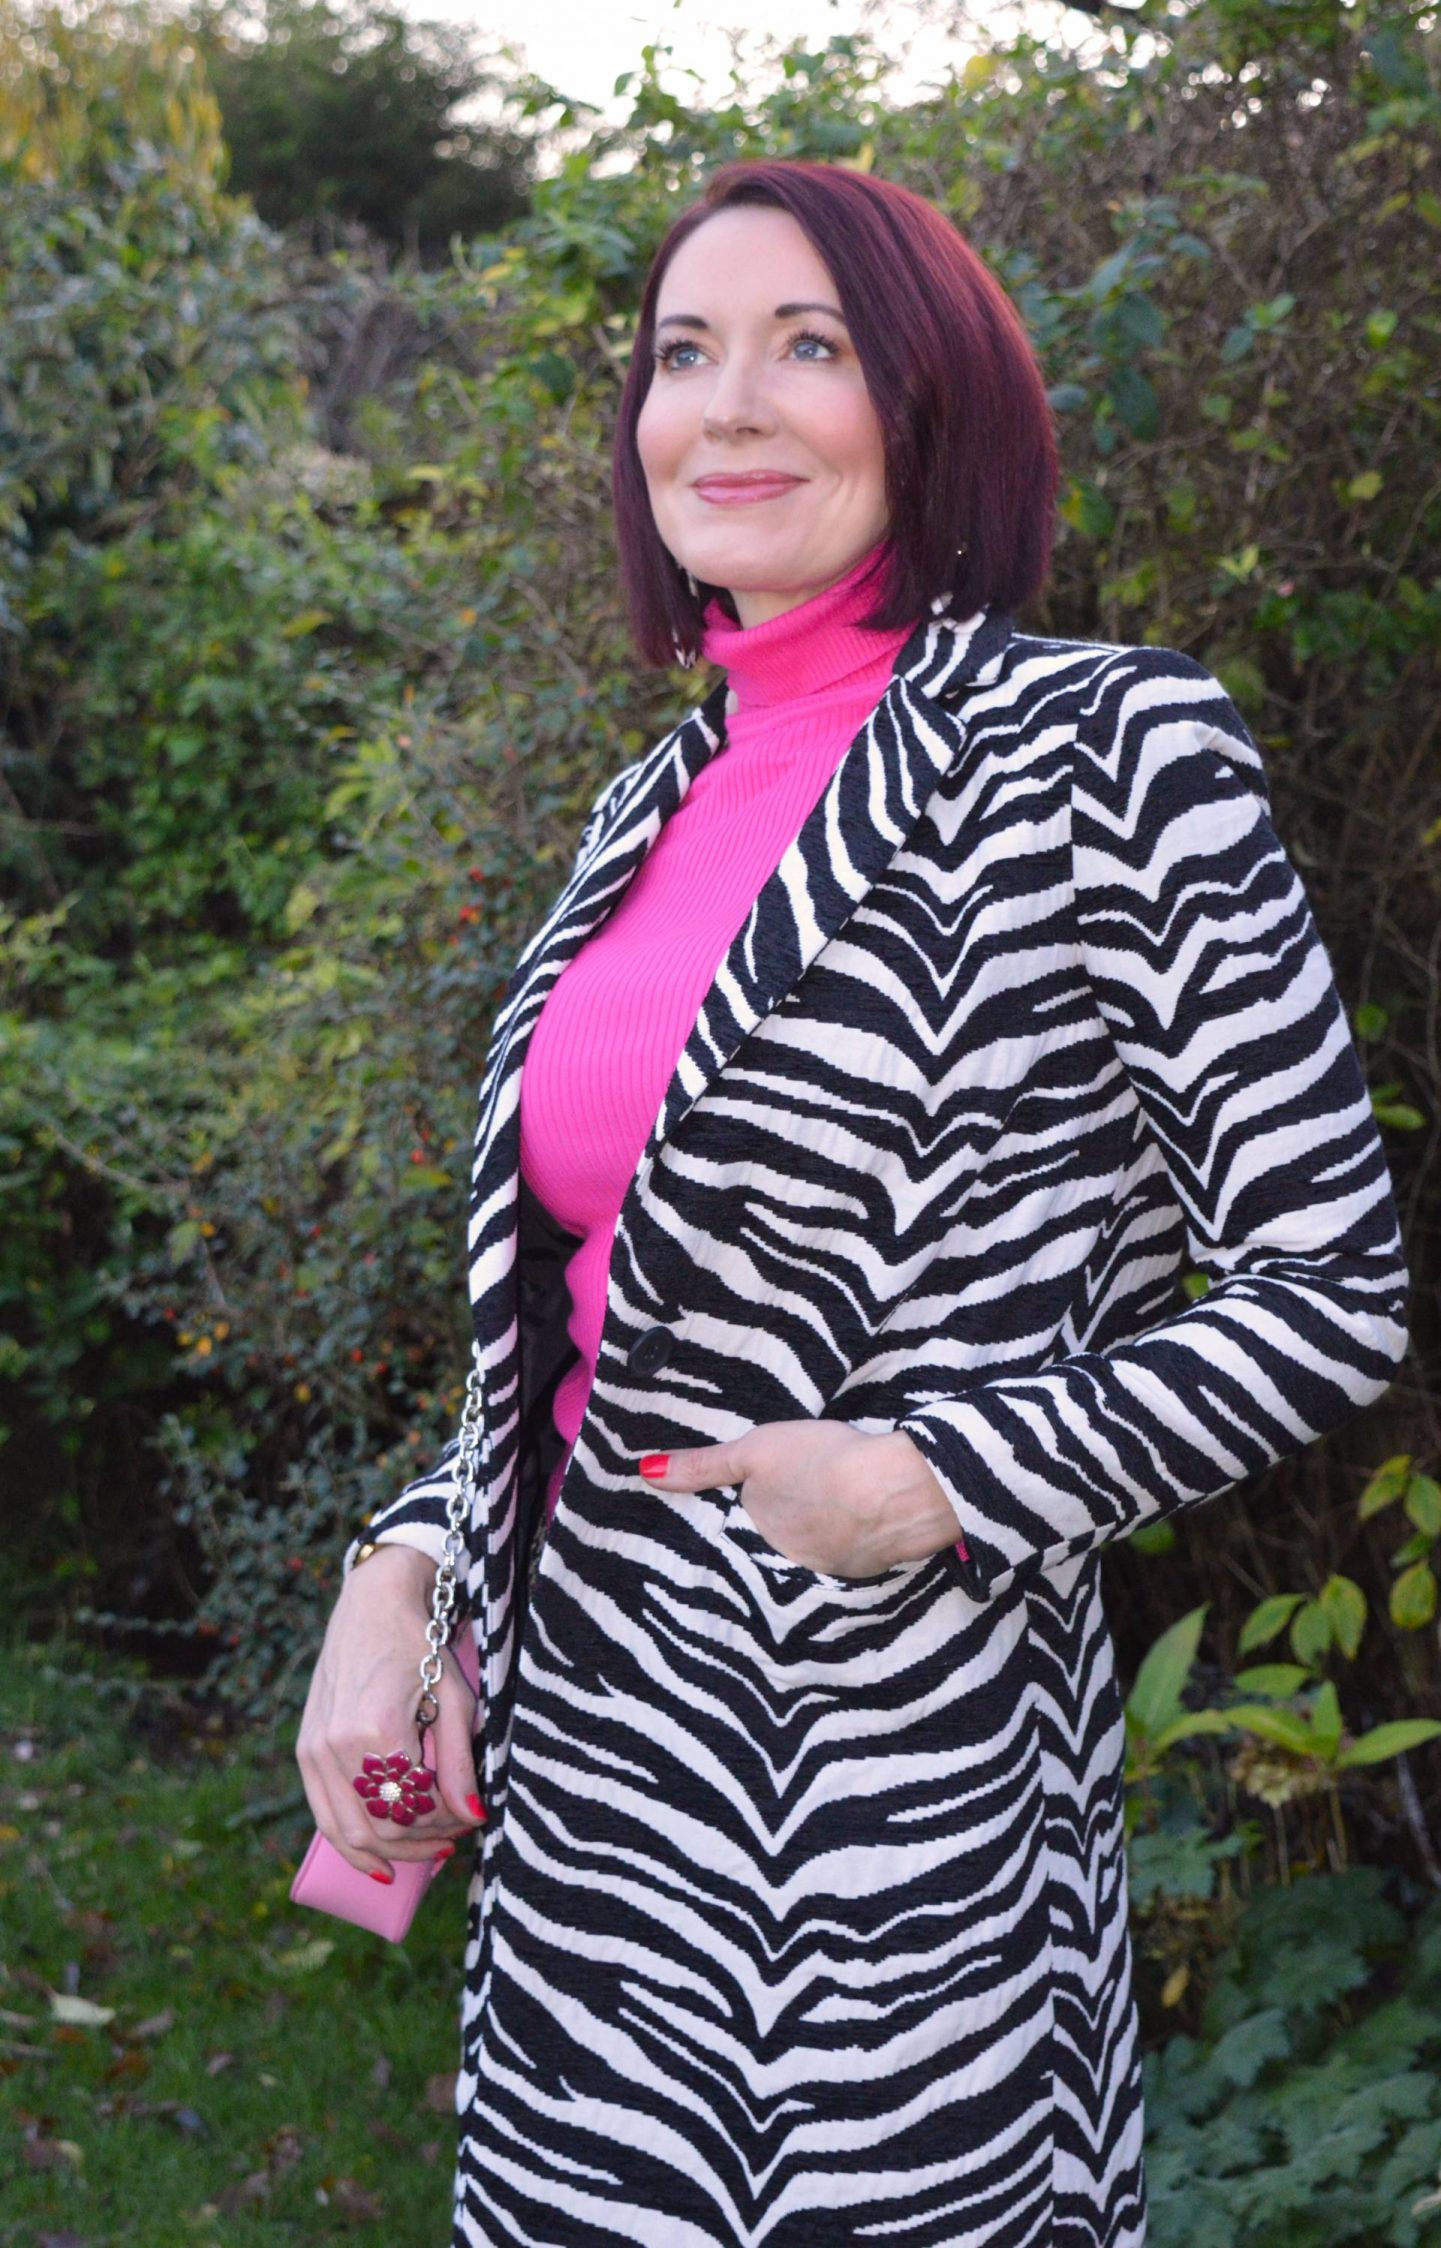 Zebra Print and Houndstooth With Bright Pink, Dept.19 zebra print coat, Zara houndstooth trousers, New Look neon pink ribbed roll neck jumper